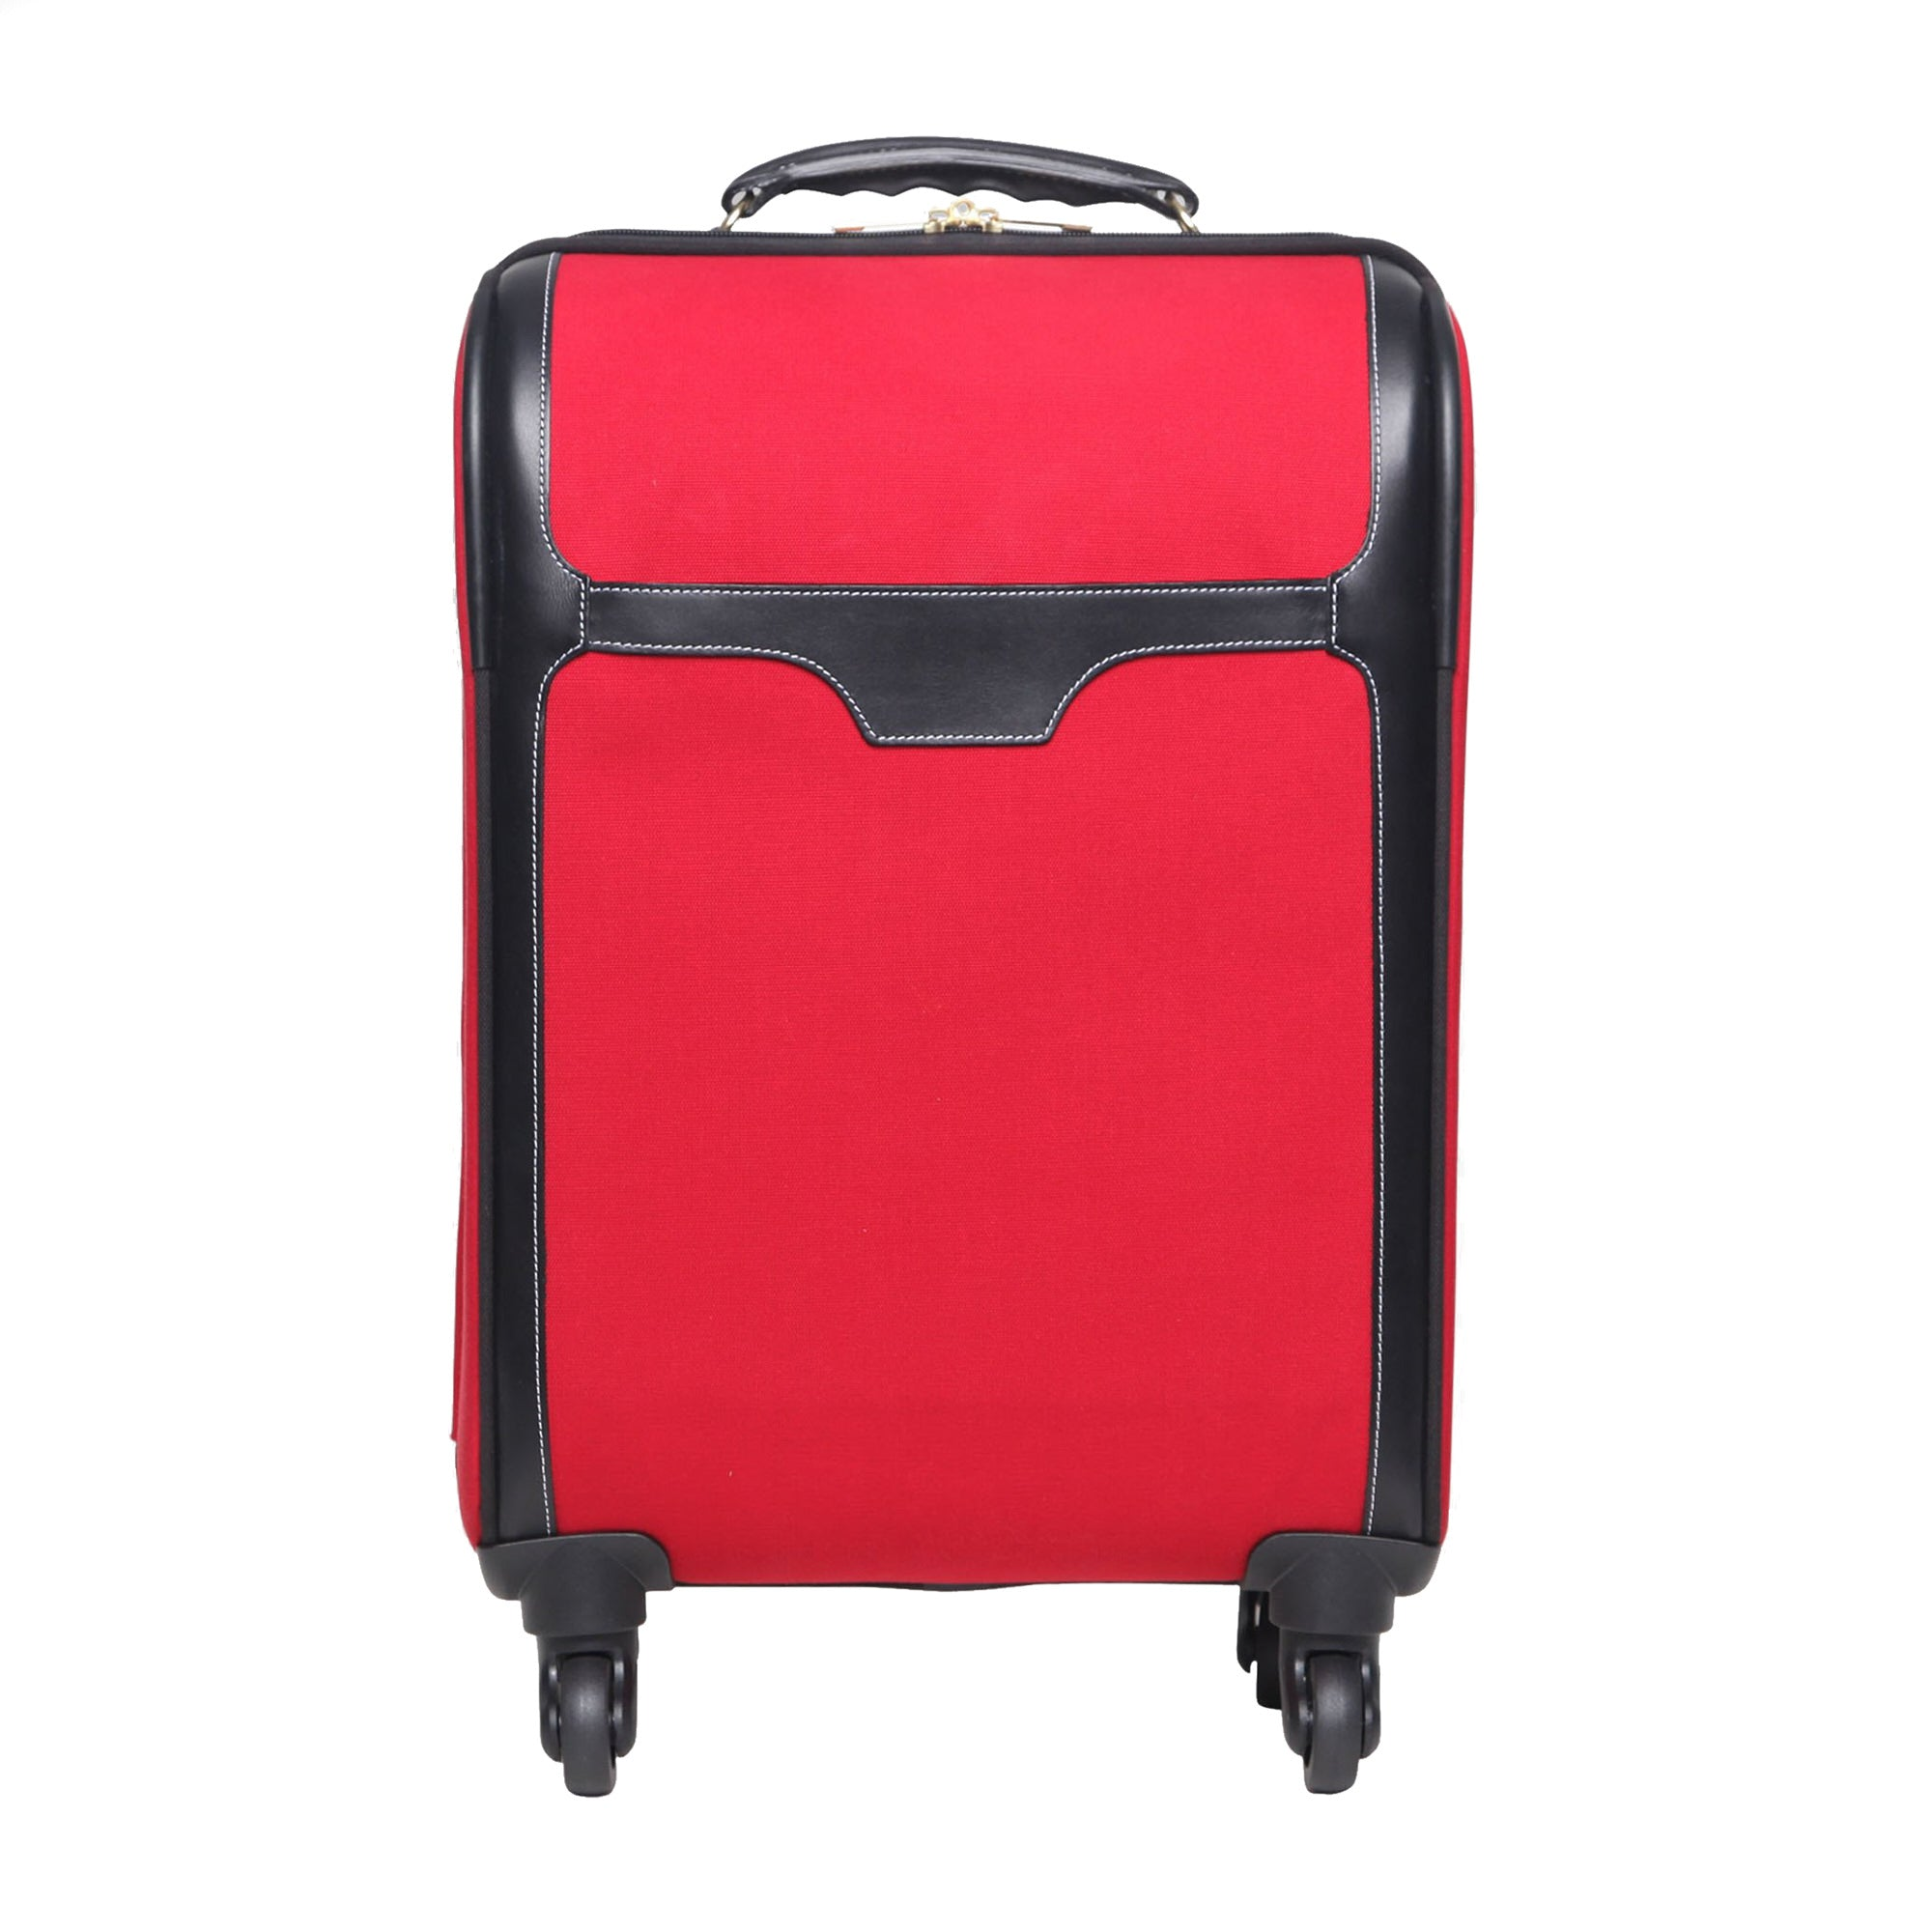 4 WHEEL INTERNATIONAL CARRY ON